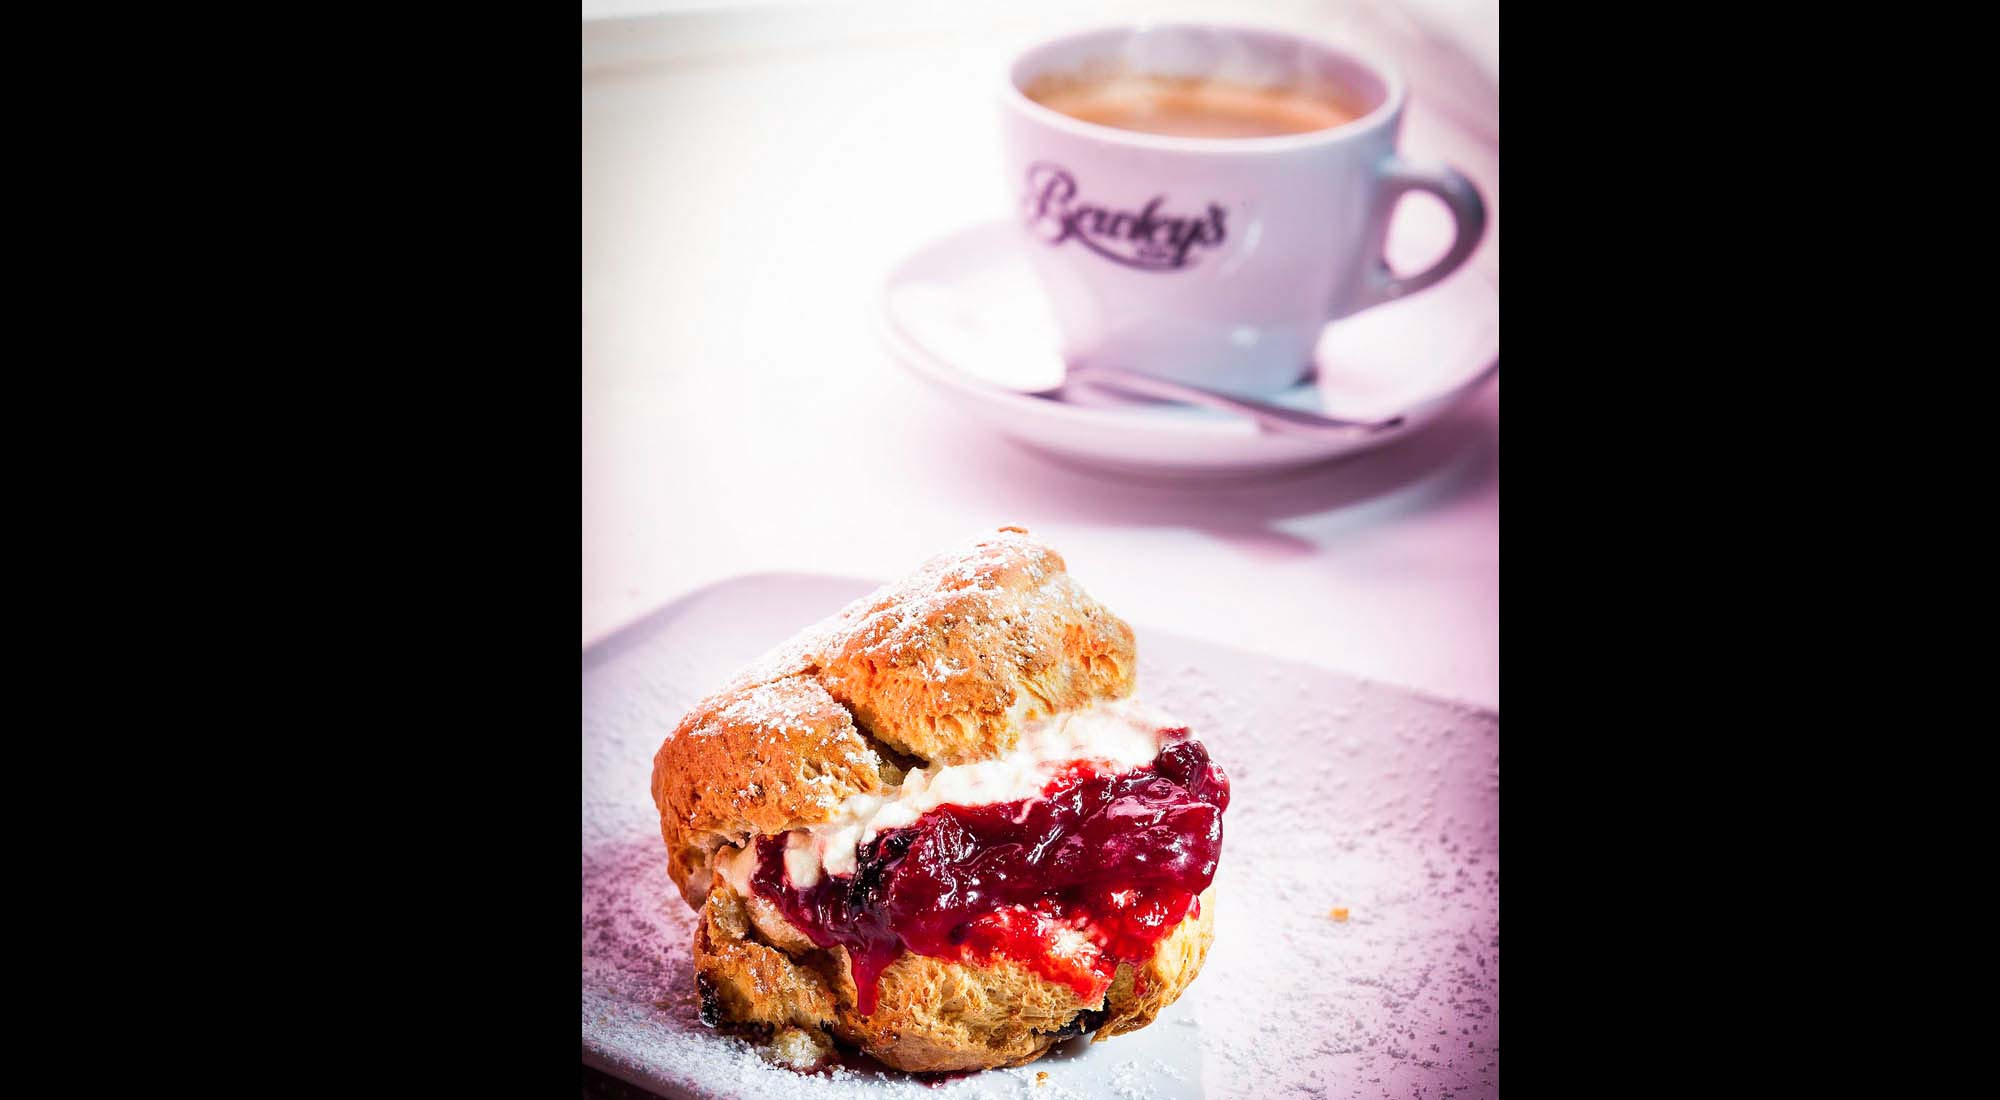 commercial-photography-restaurant-coffee-and-scone-ireland